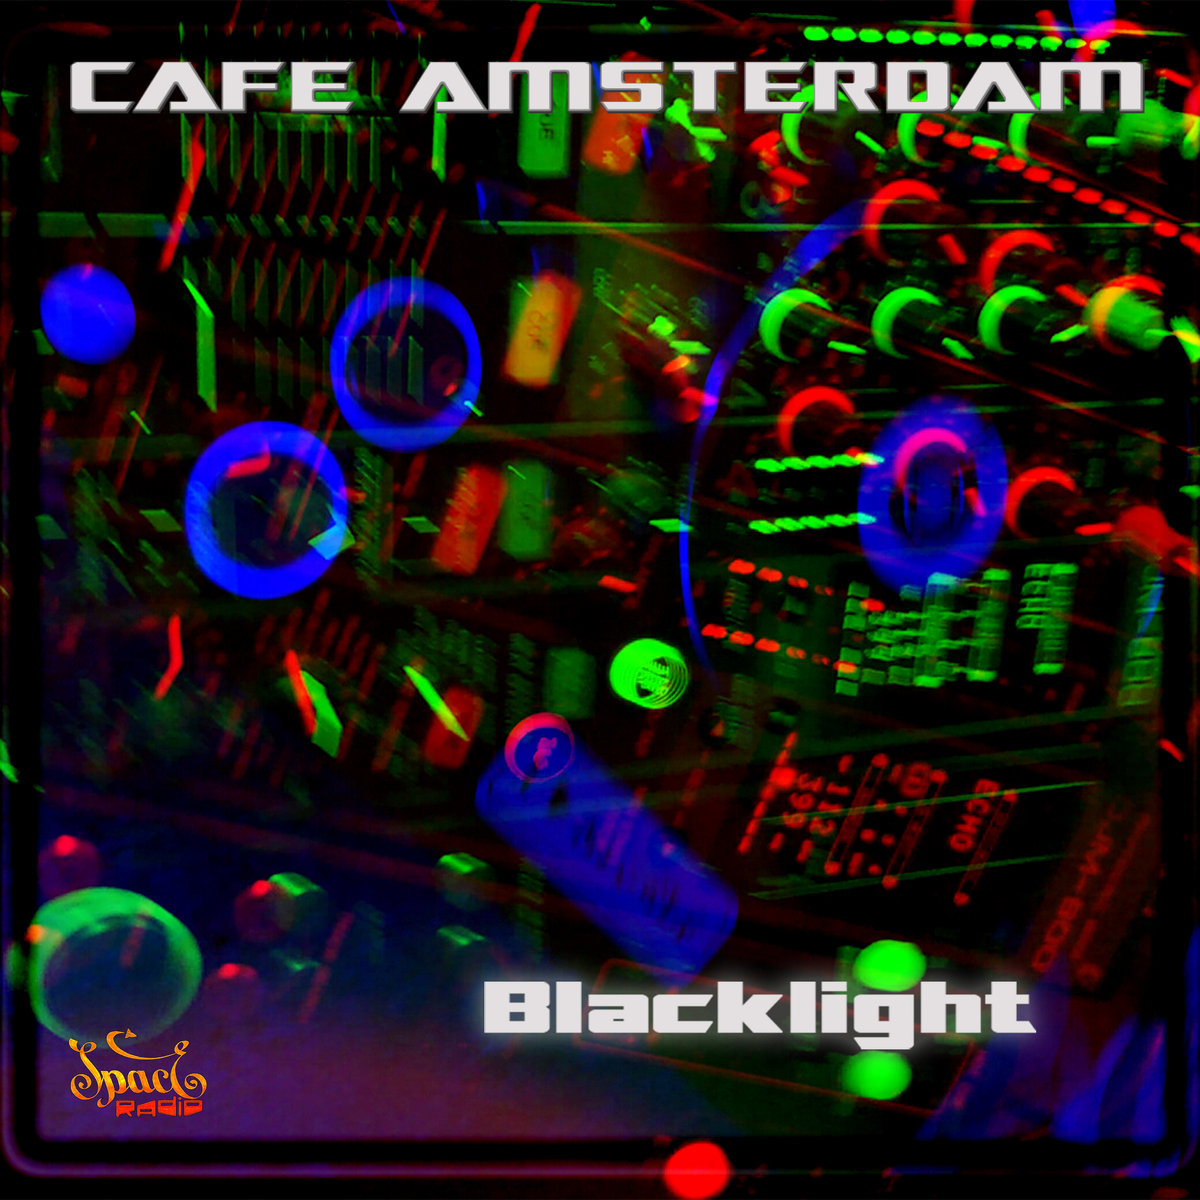 Cafe Amsterdam - Blacklight